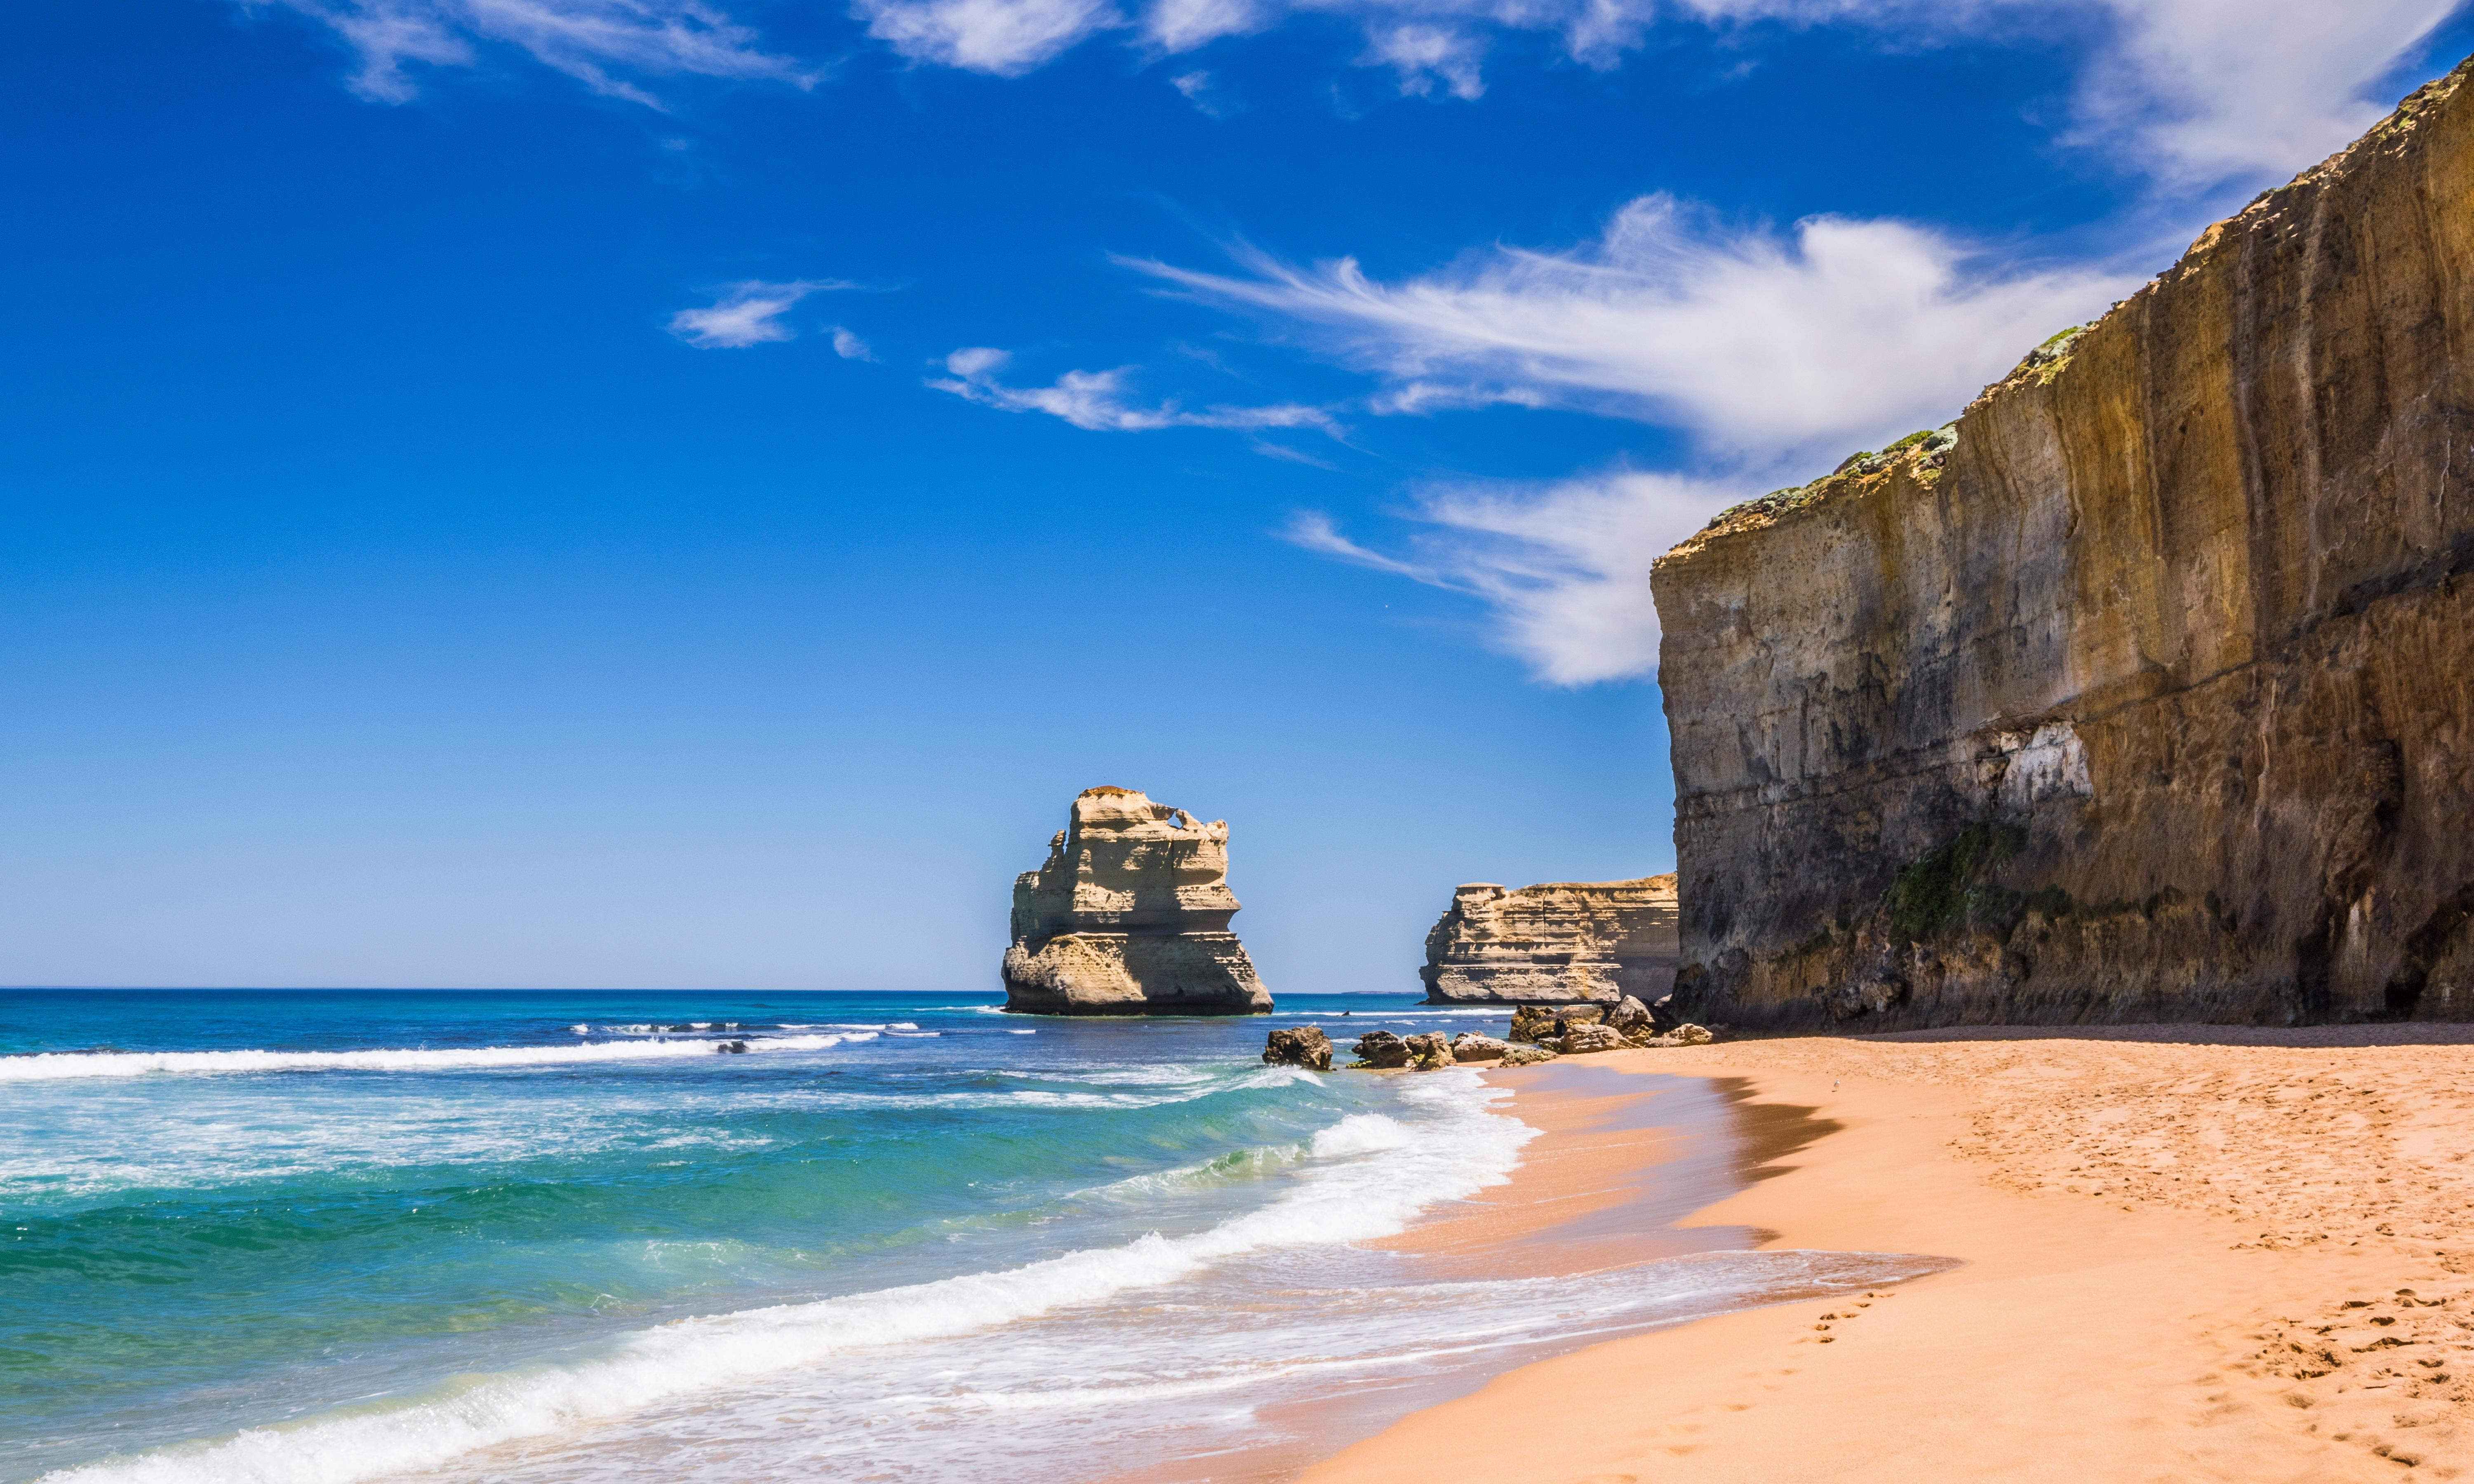 After 100 years, the Great Ocean Road is feeling the strain